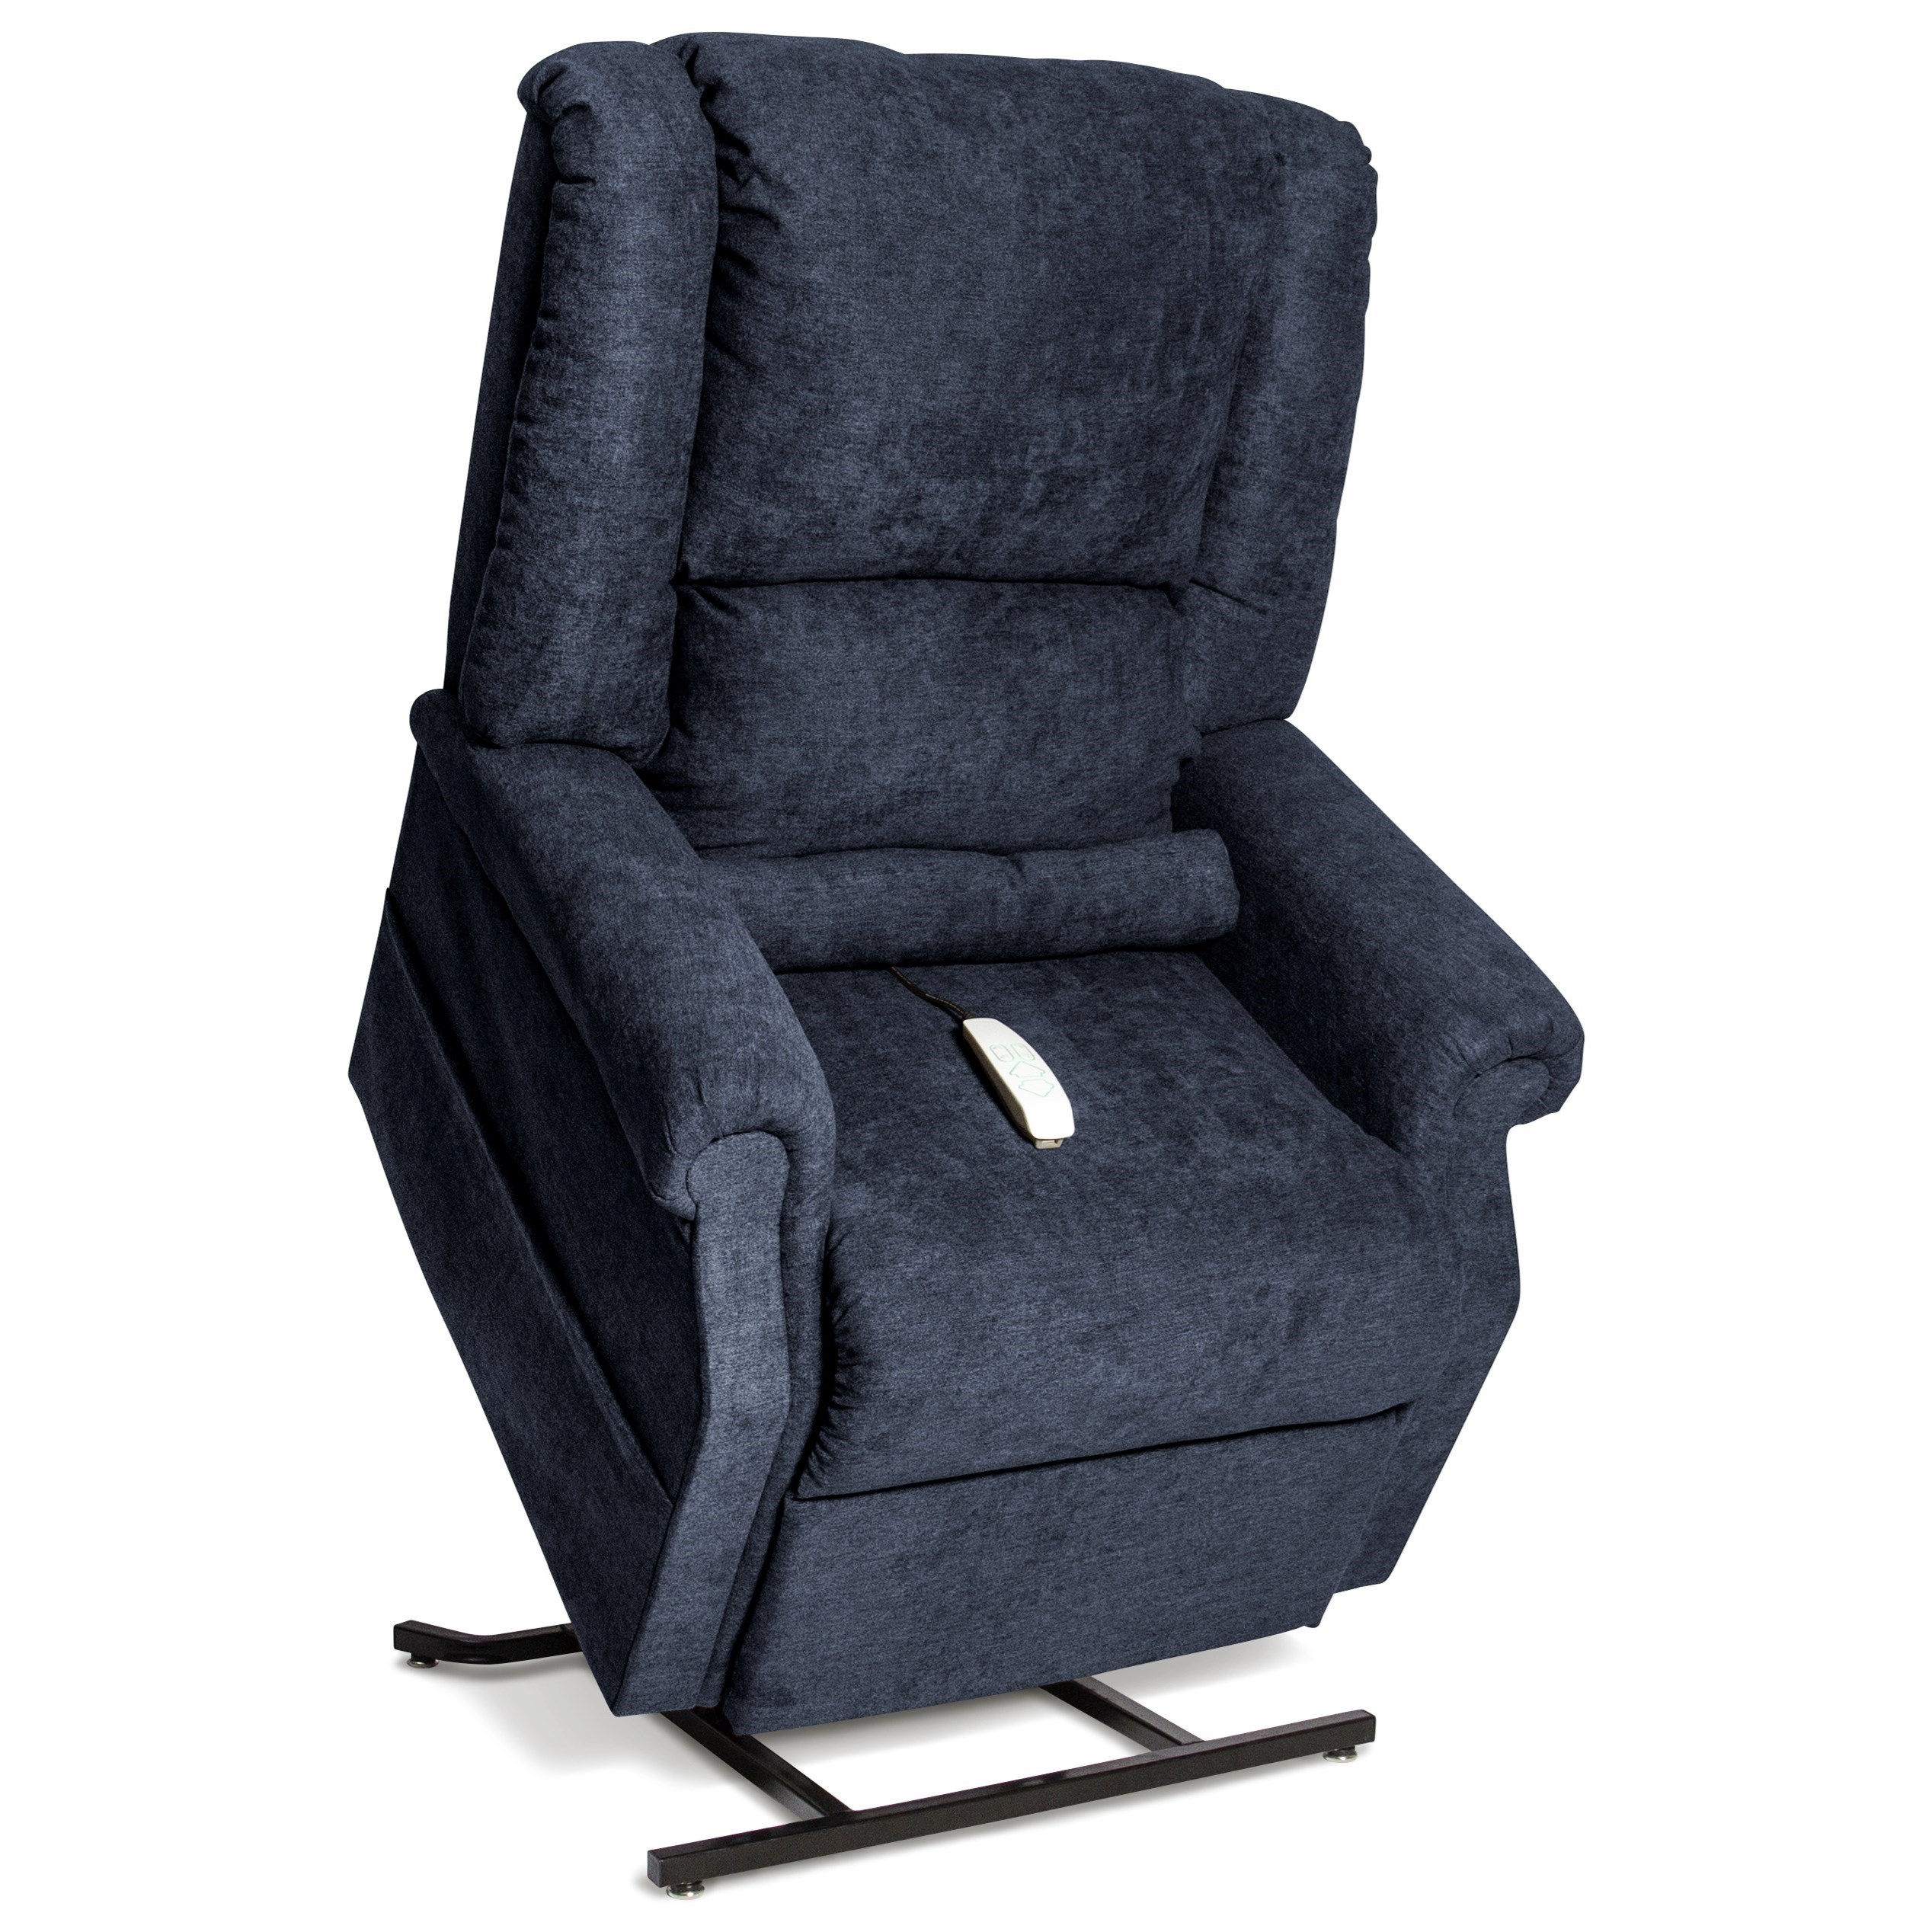 Lift Chairs Juno Lay-Flat Chaise Lounger by Windermere Motion at Lapeer Furniture & Mattress Center